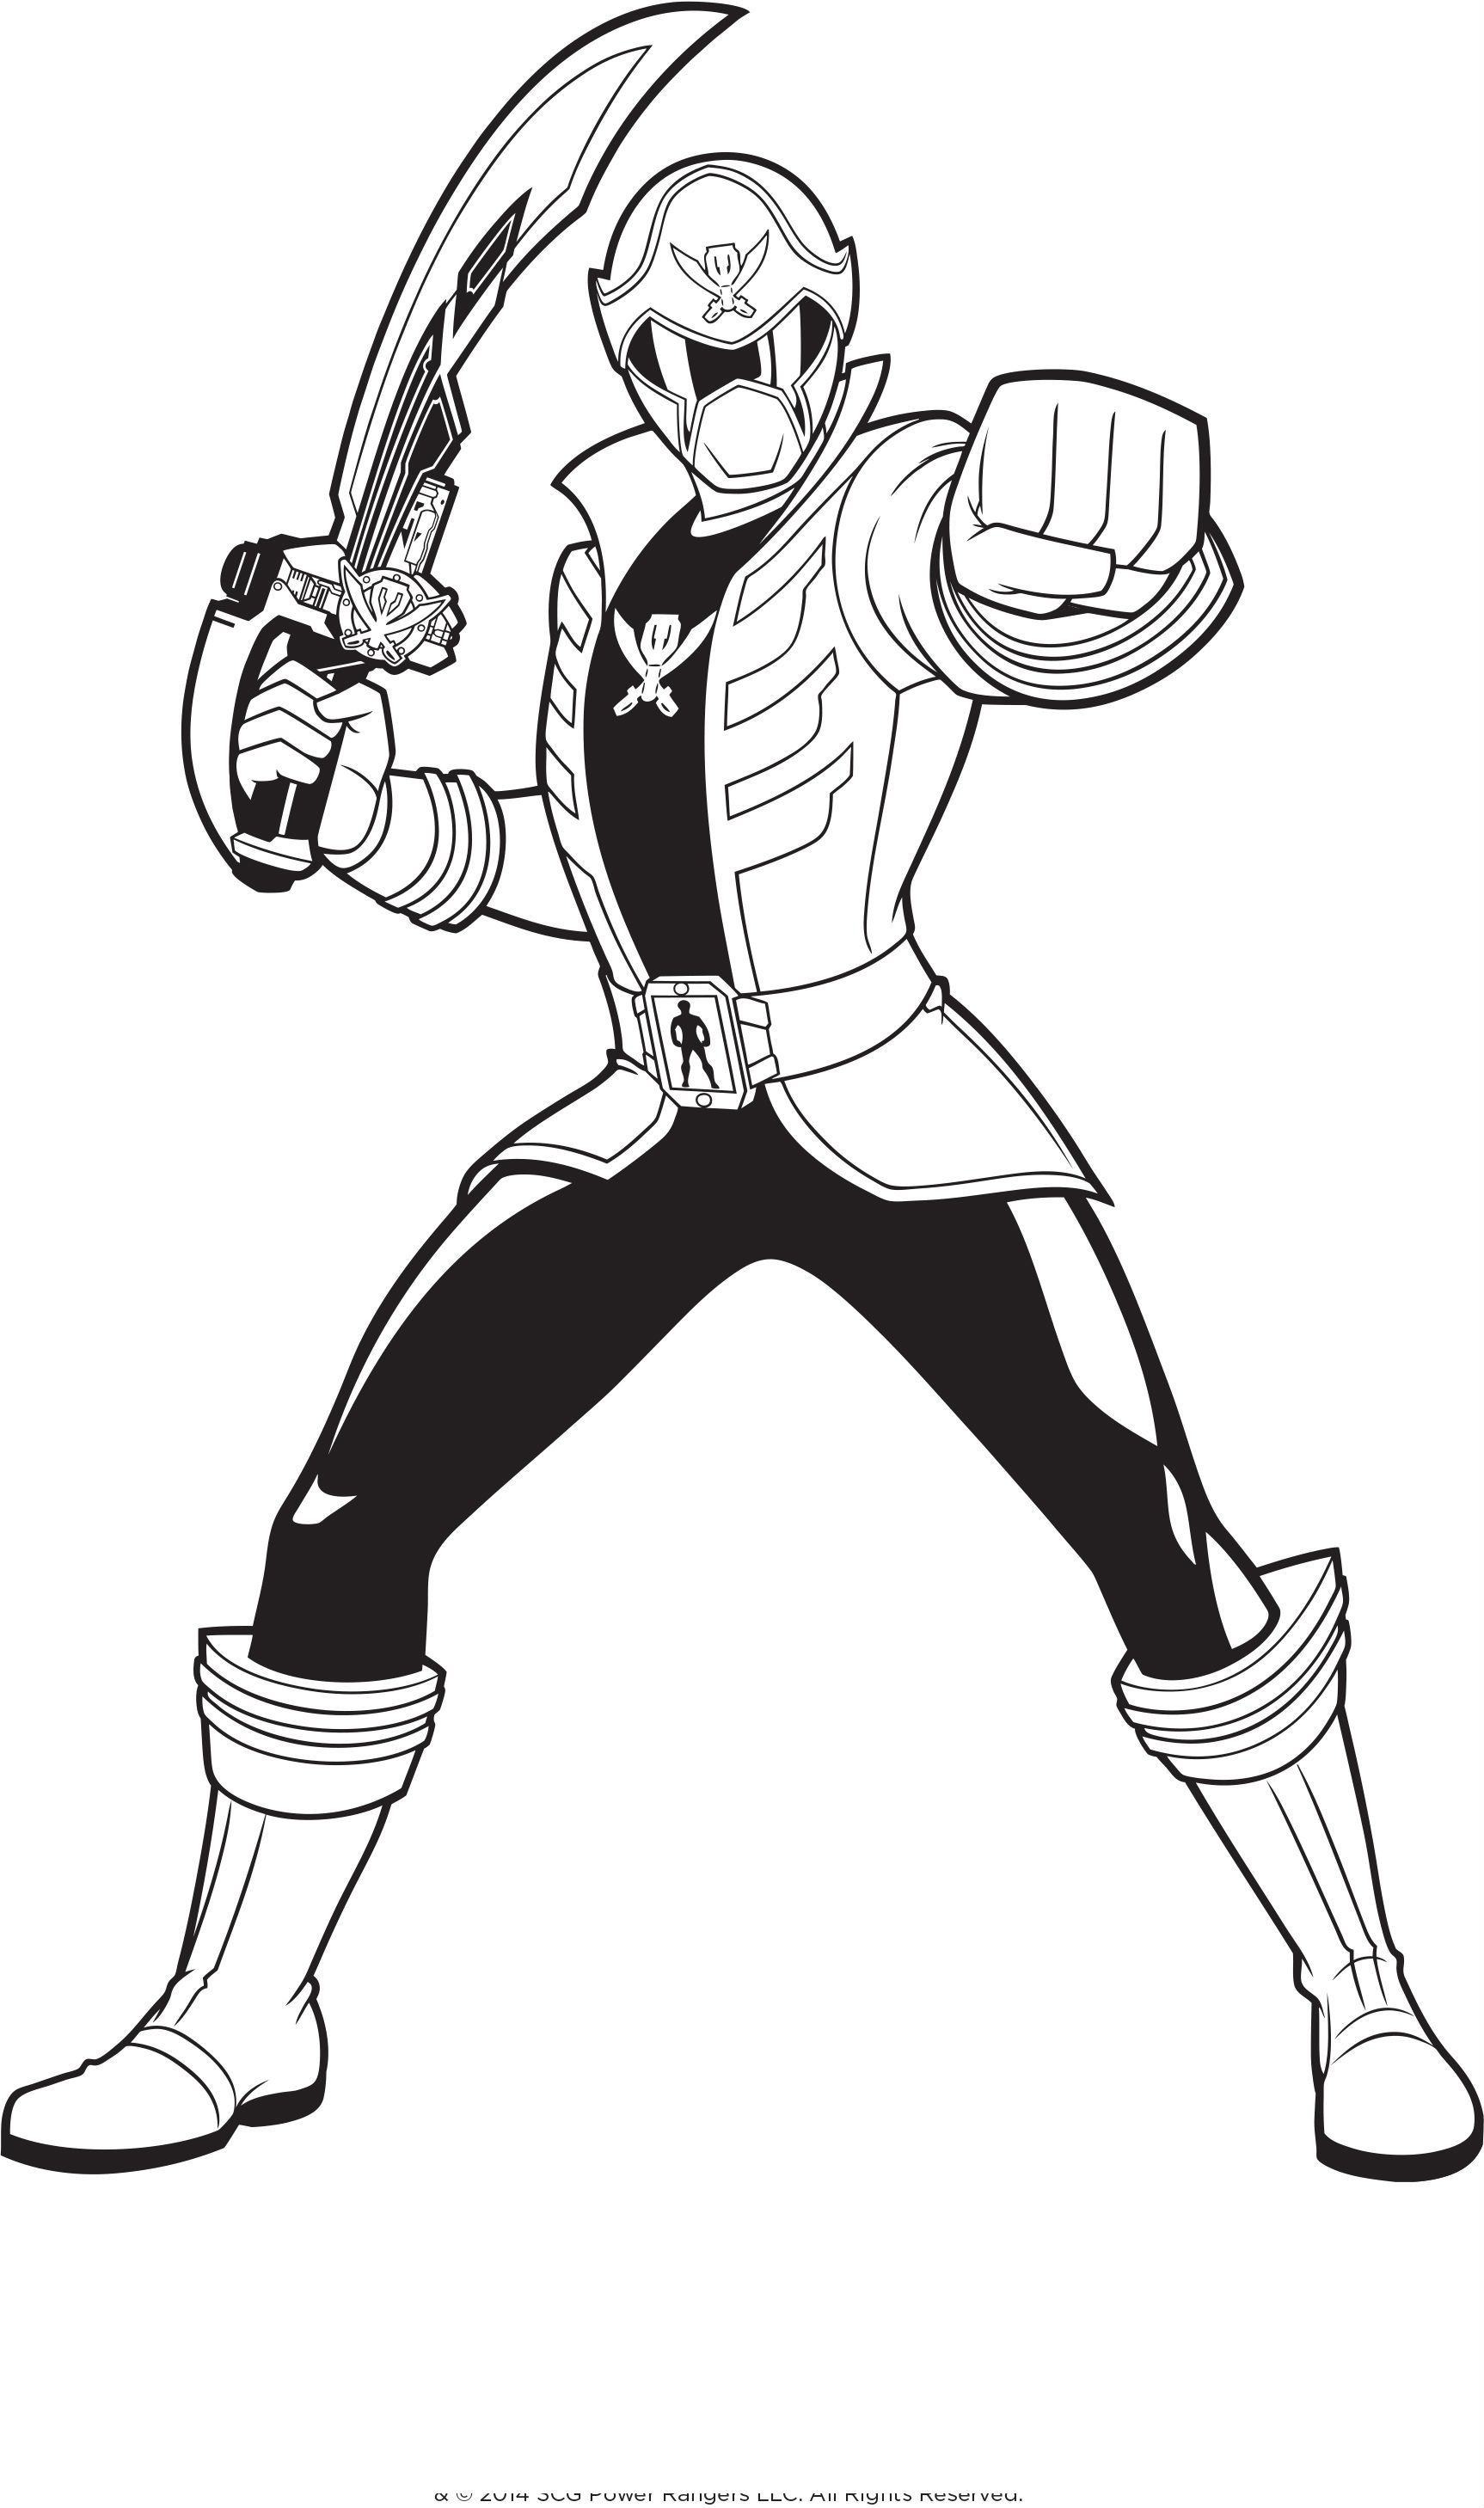 Power Rangers Holding A Sword | Power Rangers Coloring Pages ...